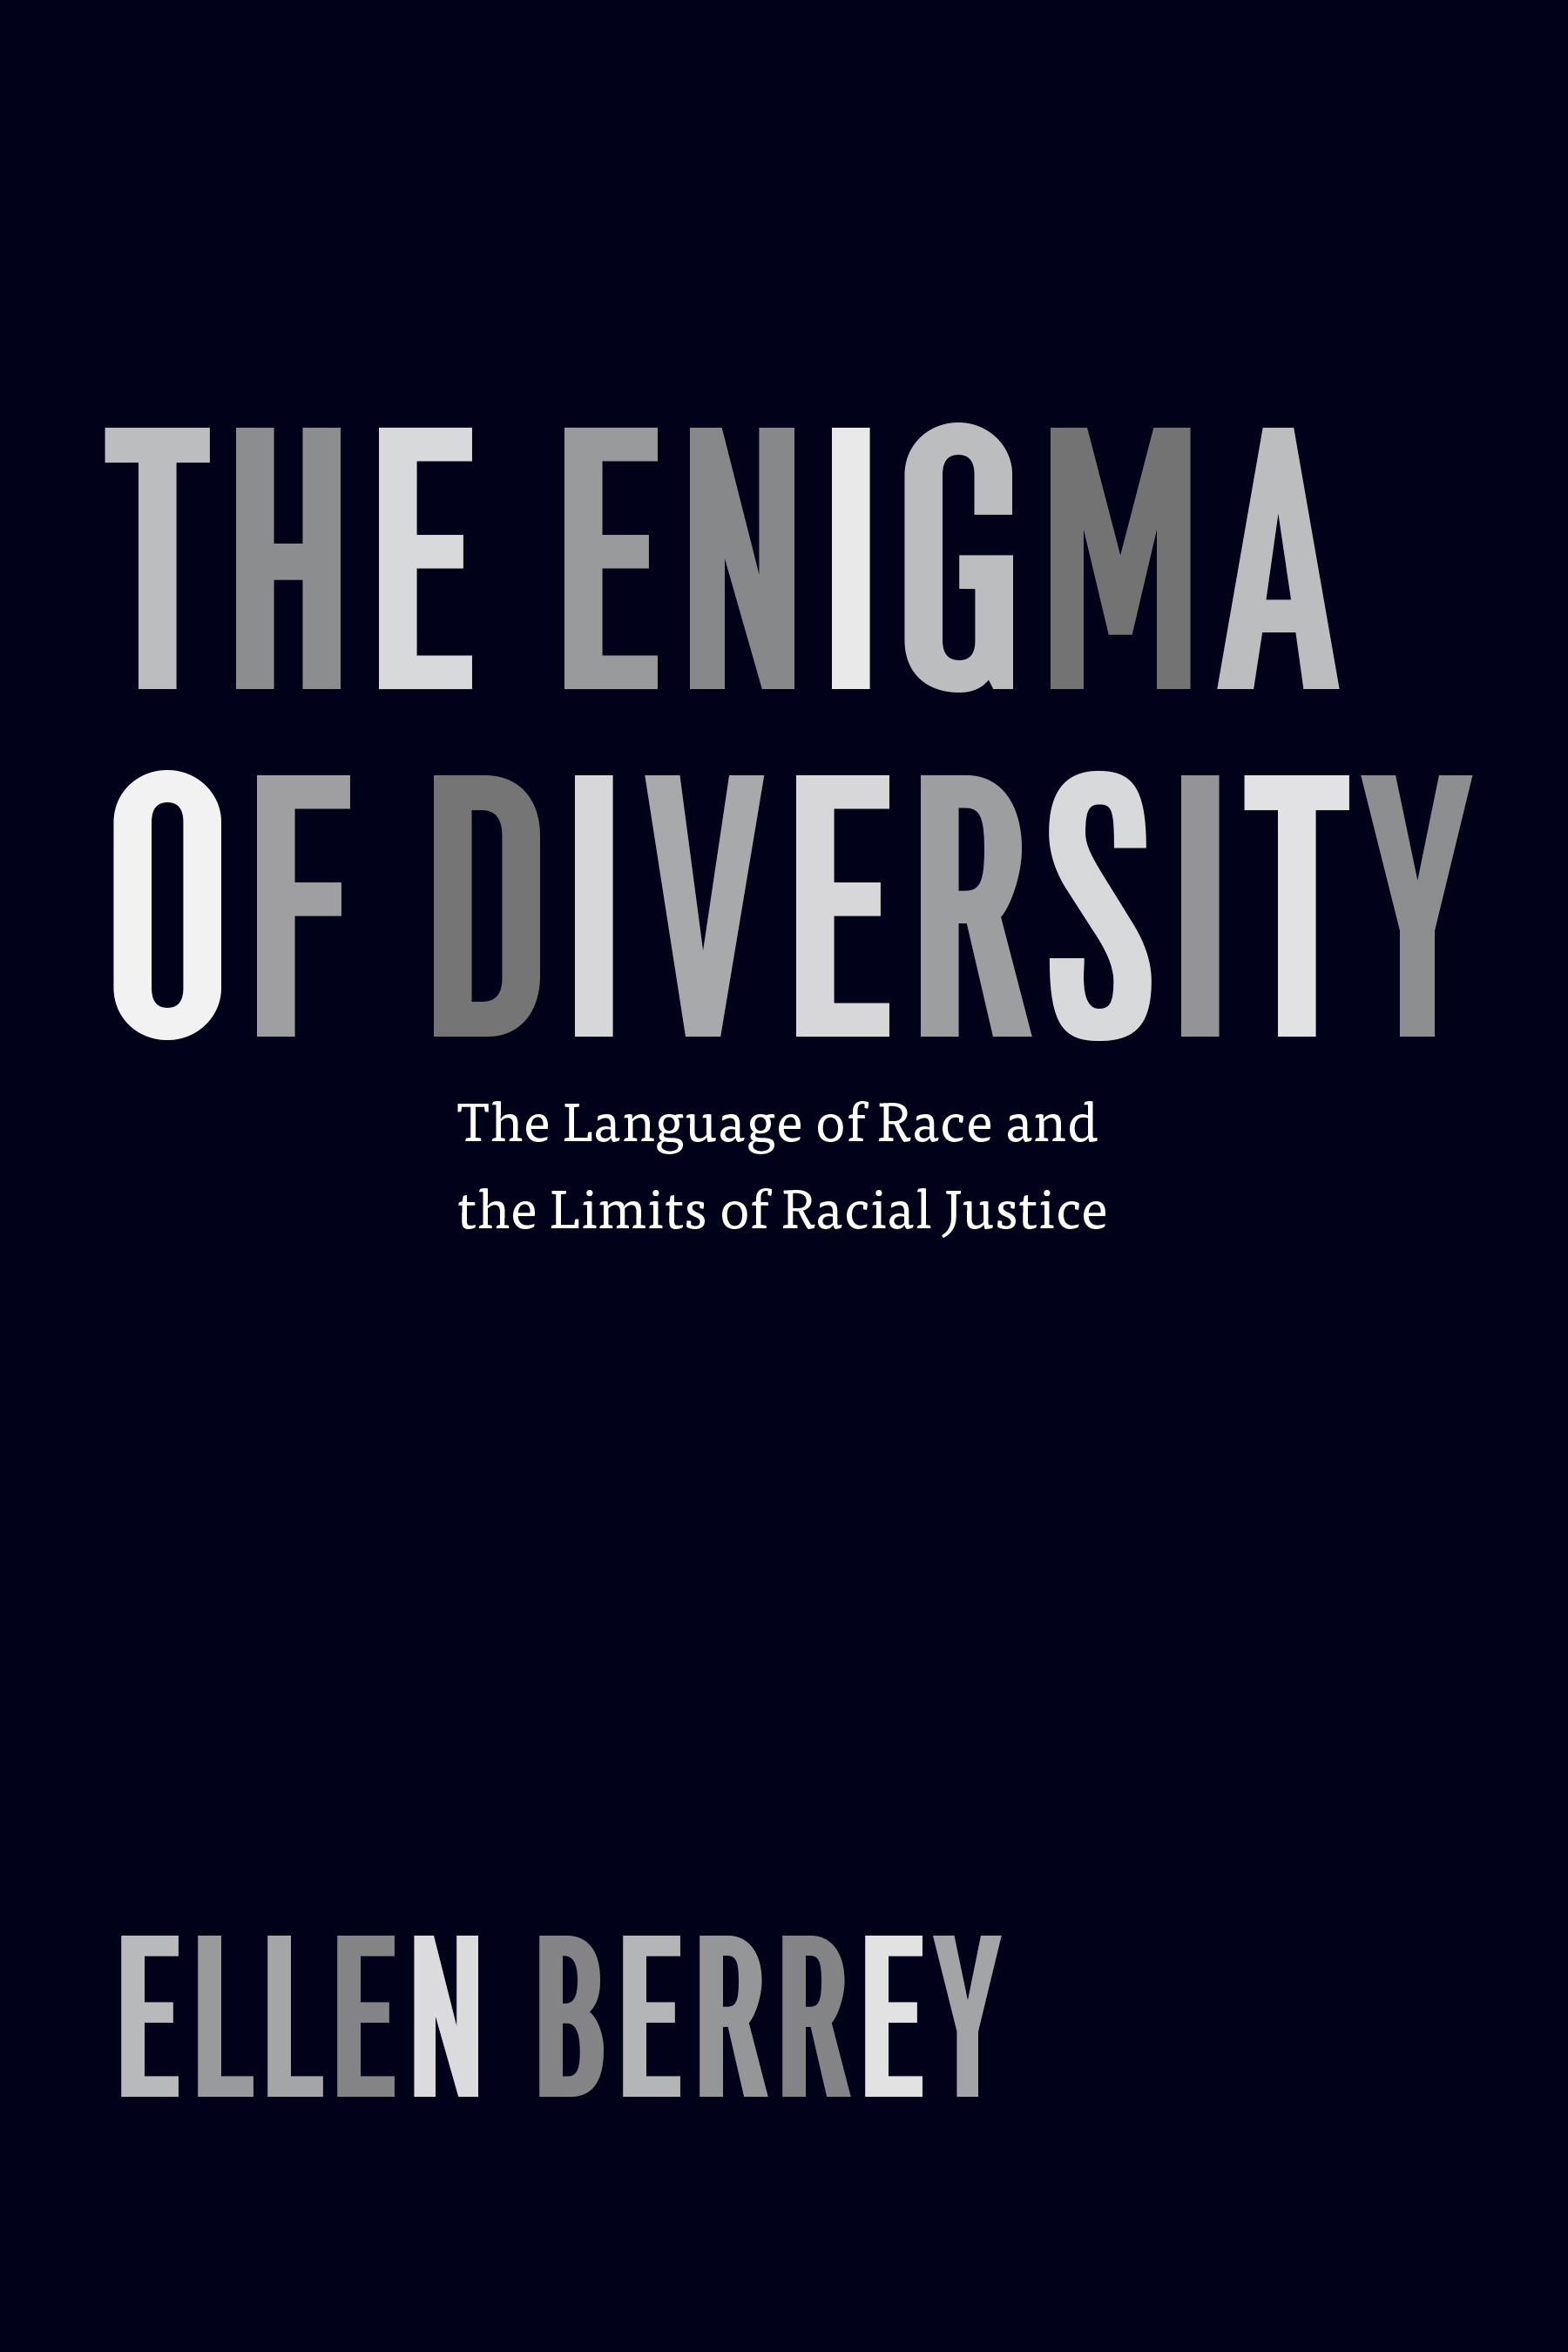 diversity organizations occupations and work berrey enigma 9780226246239 cvr ift diversity